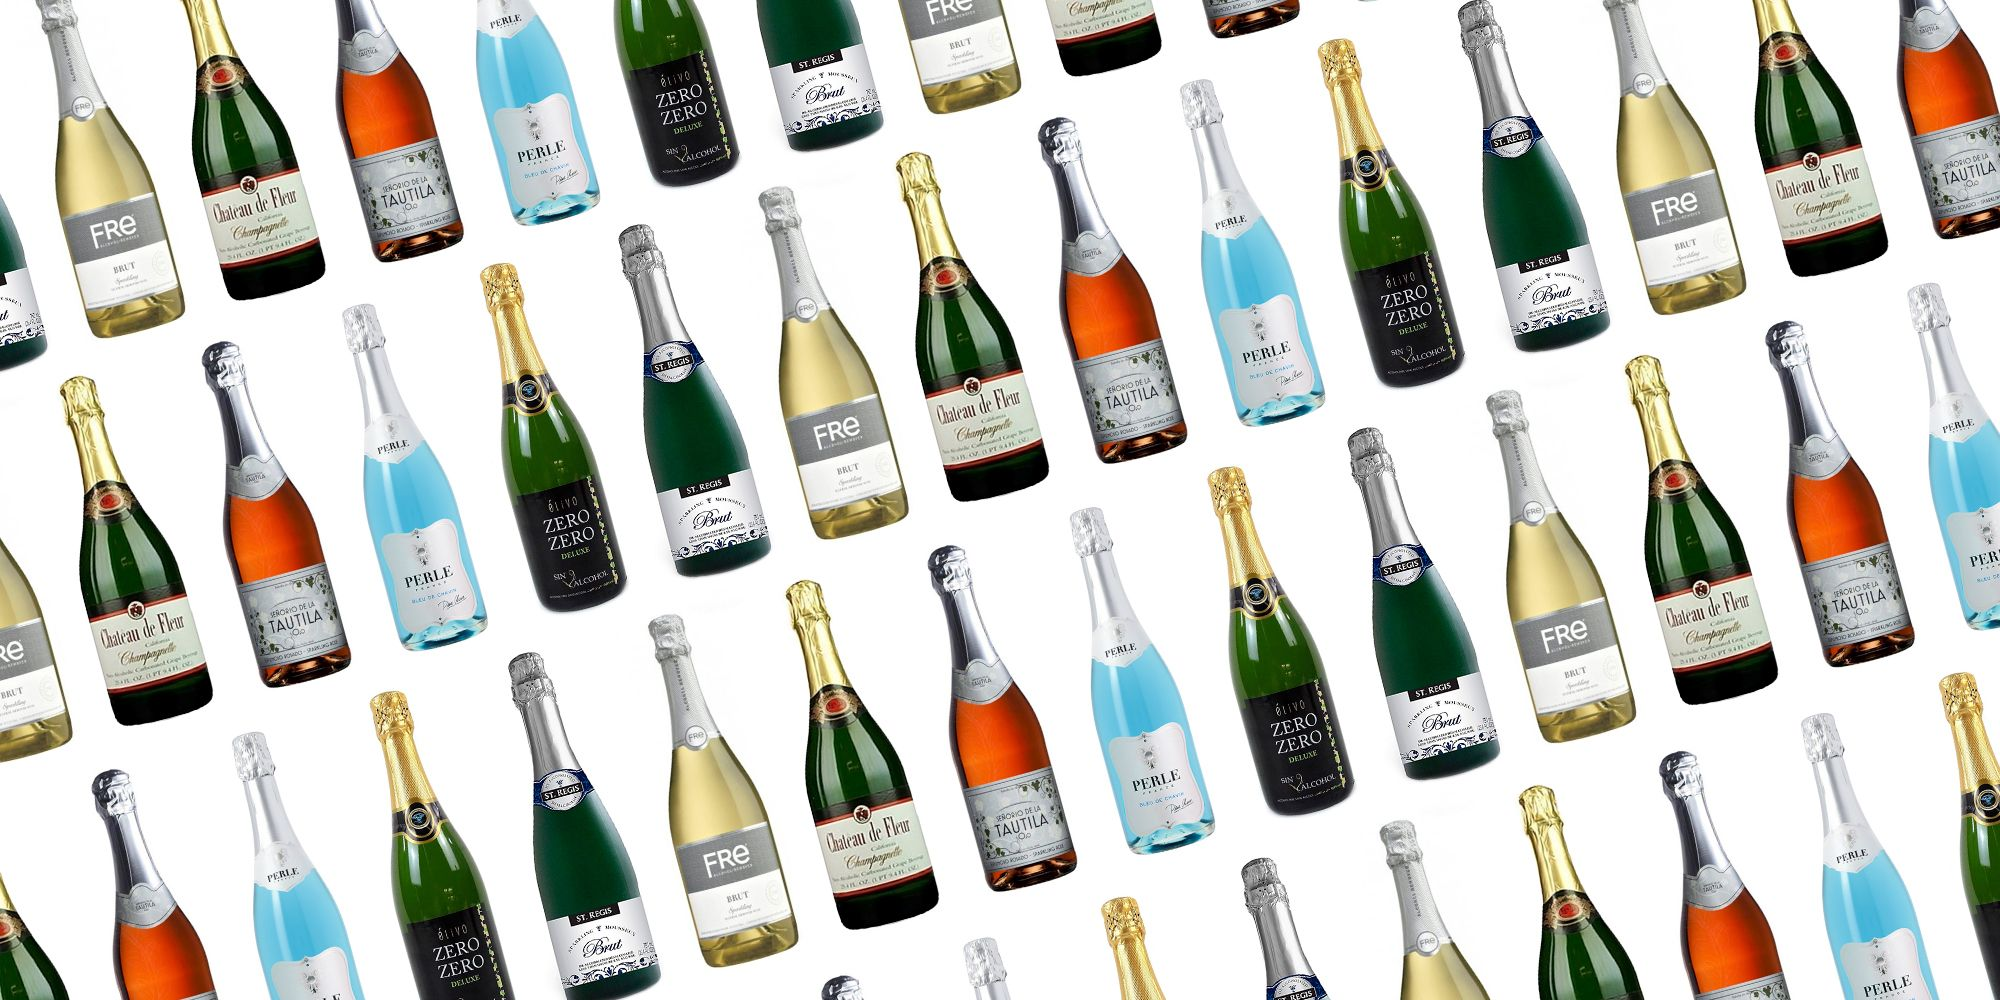 6 Best Non Alcoholic Champagnes 2019 - Top Alcohol Free